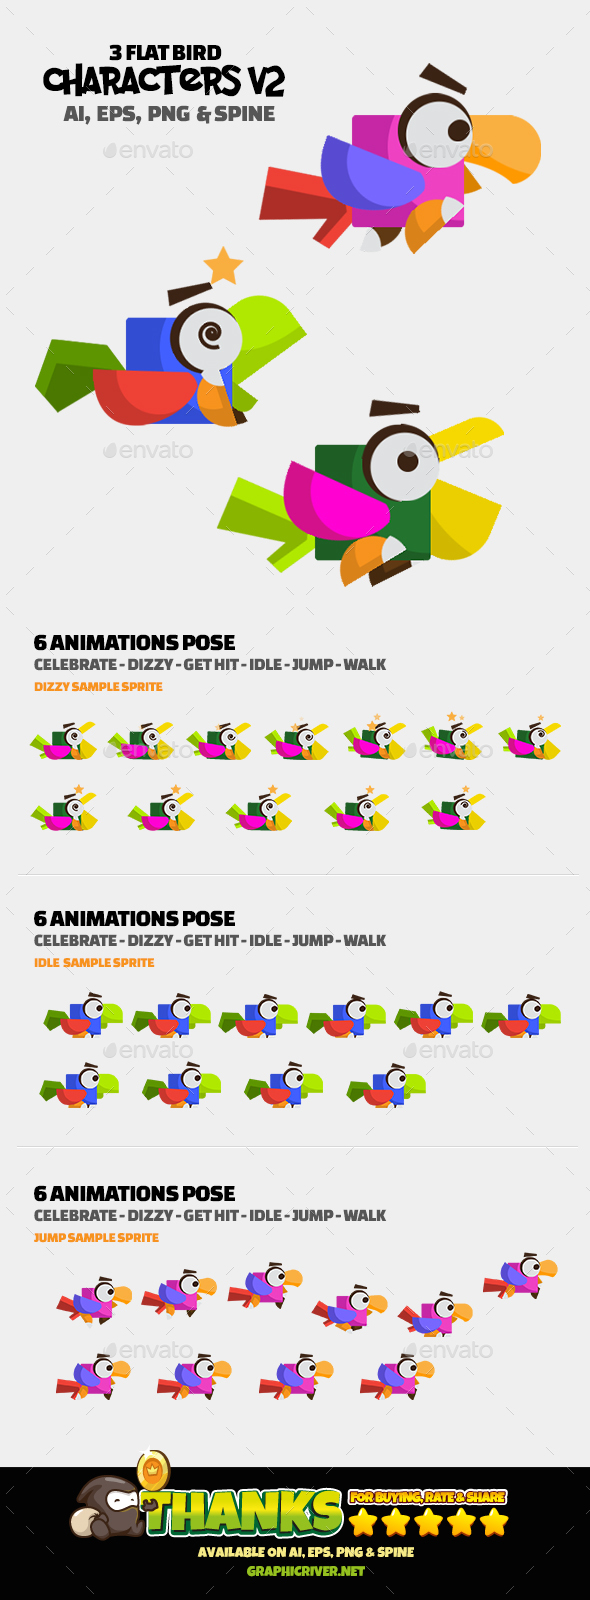 GraphicRiver 3 Flat Bird V2 20587587